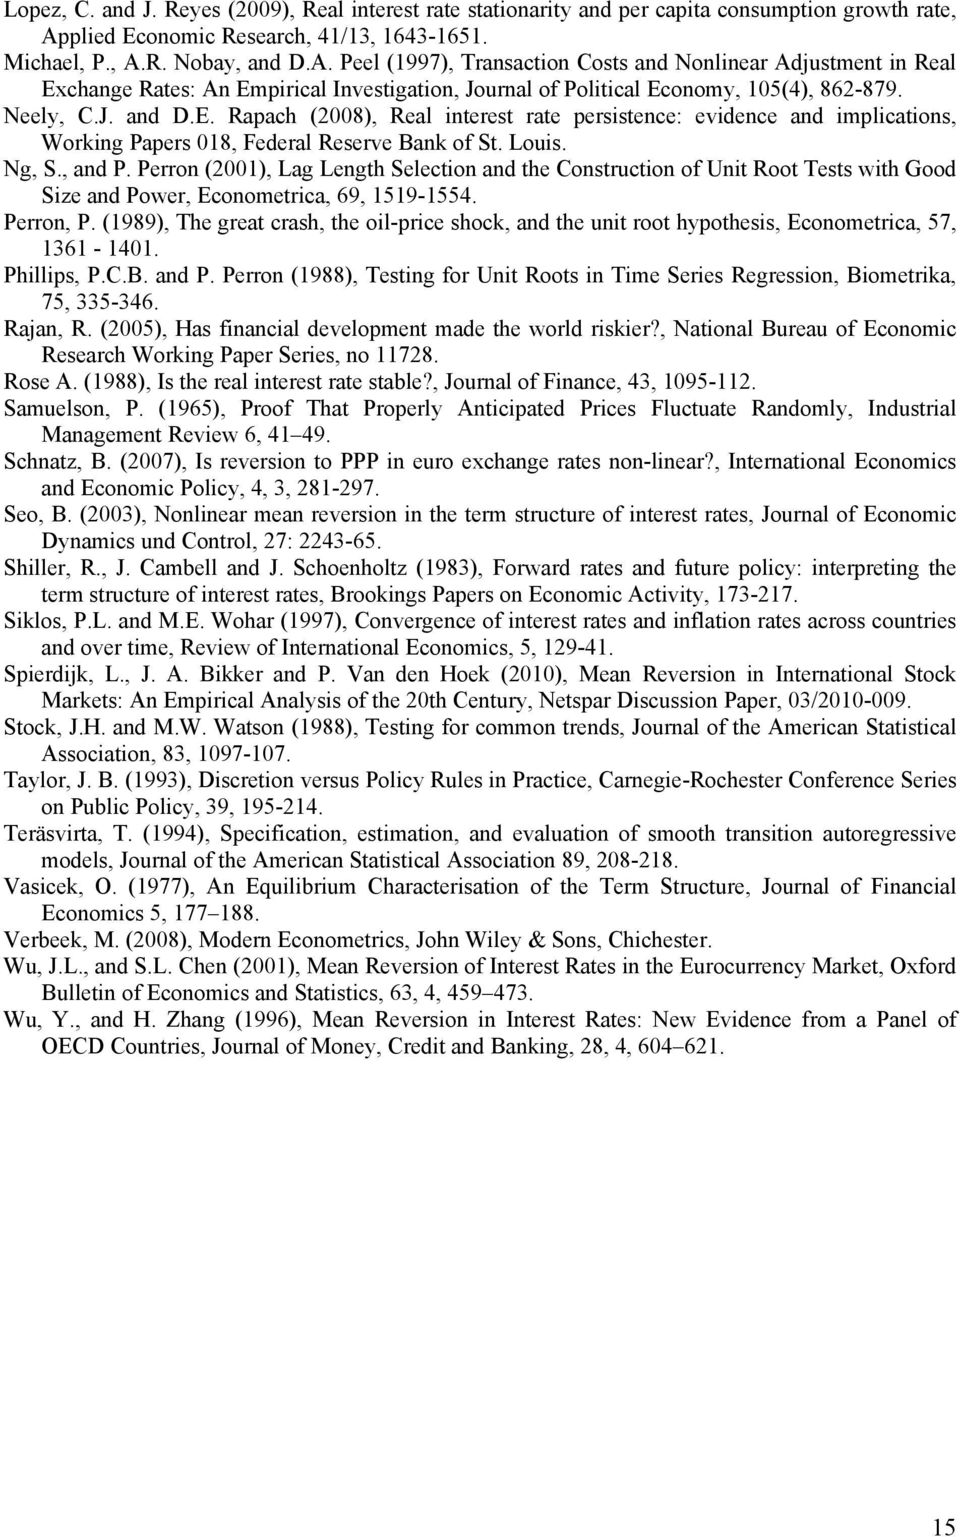 R. Nobay, and D.A. Peel (1997), Transaction Costs and Nonlinear Adjustment in Real Ex